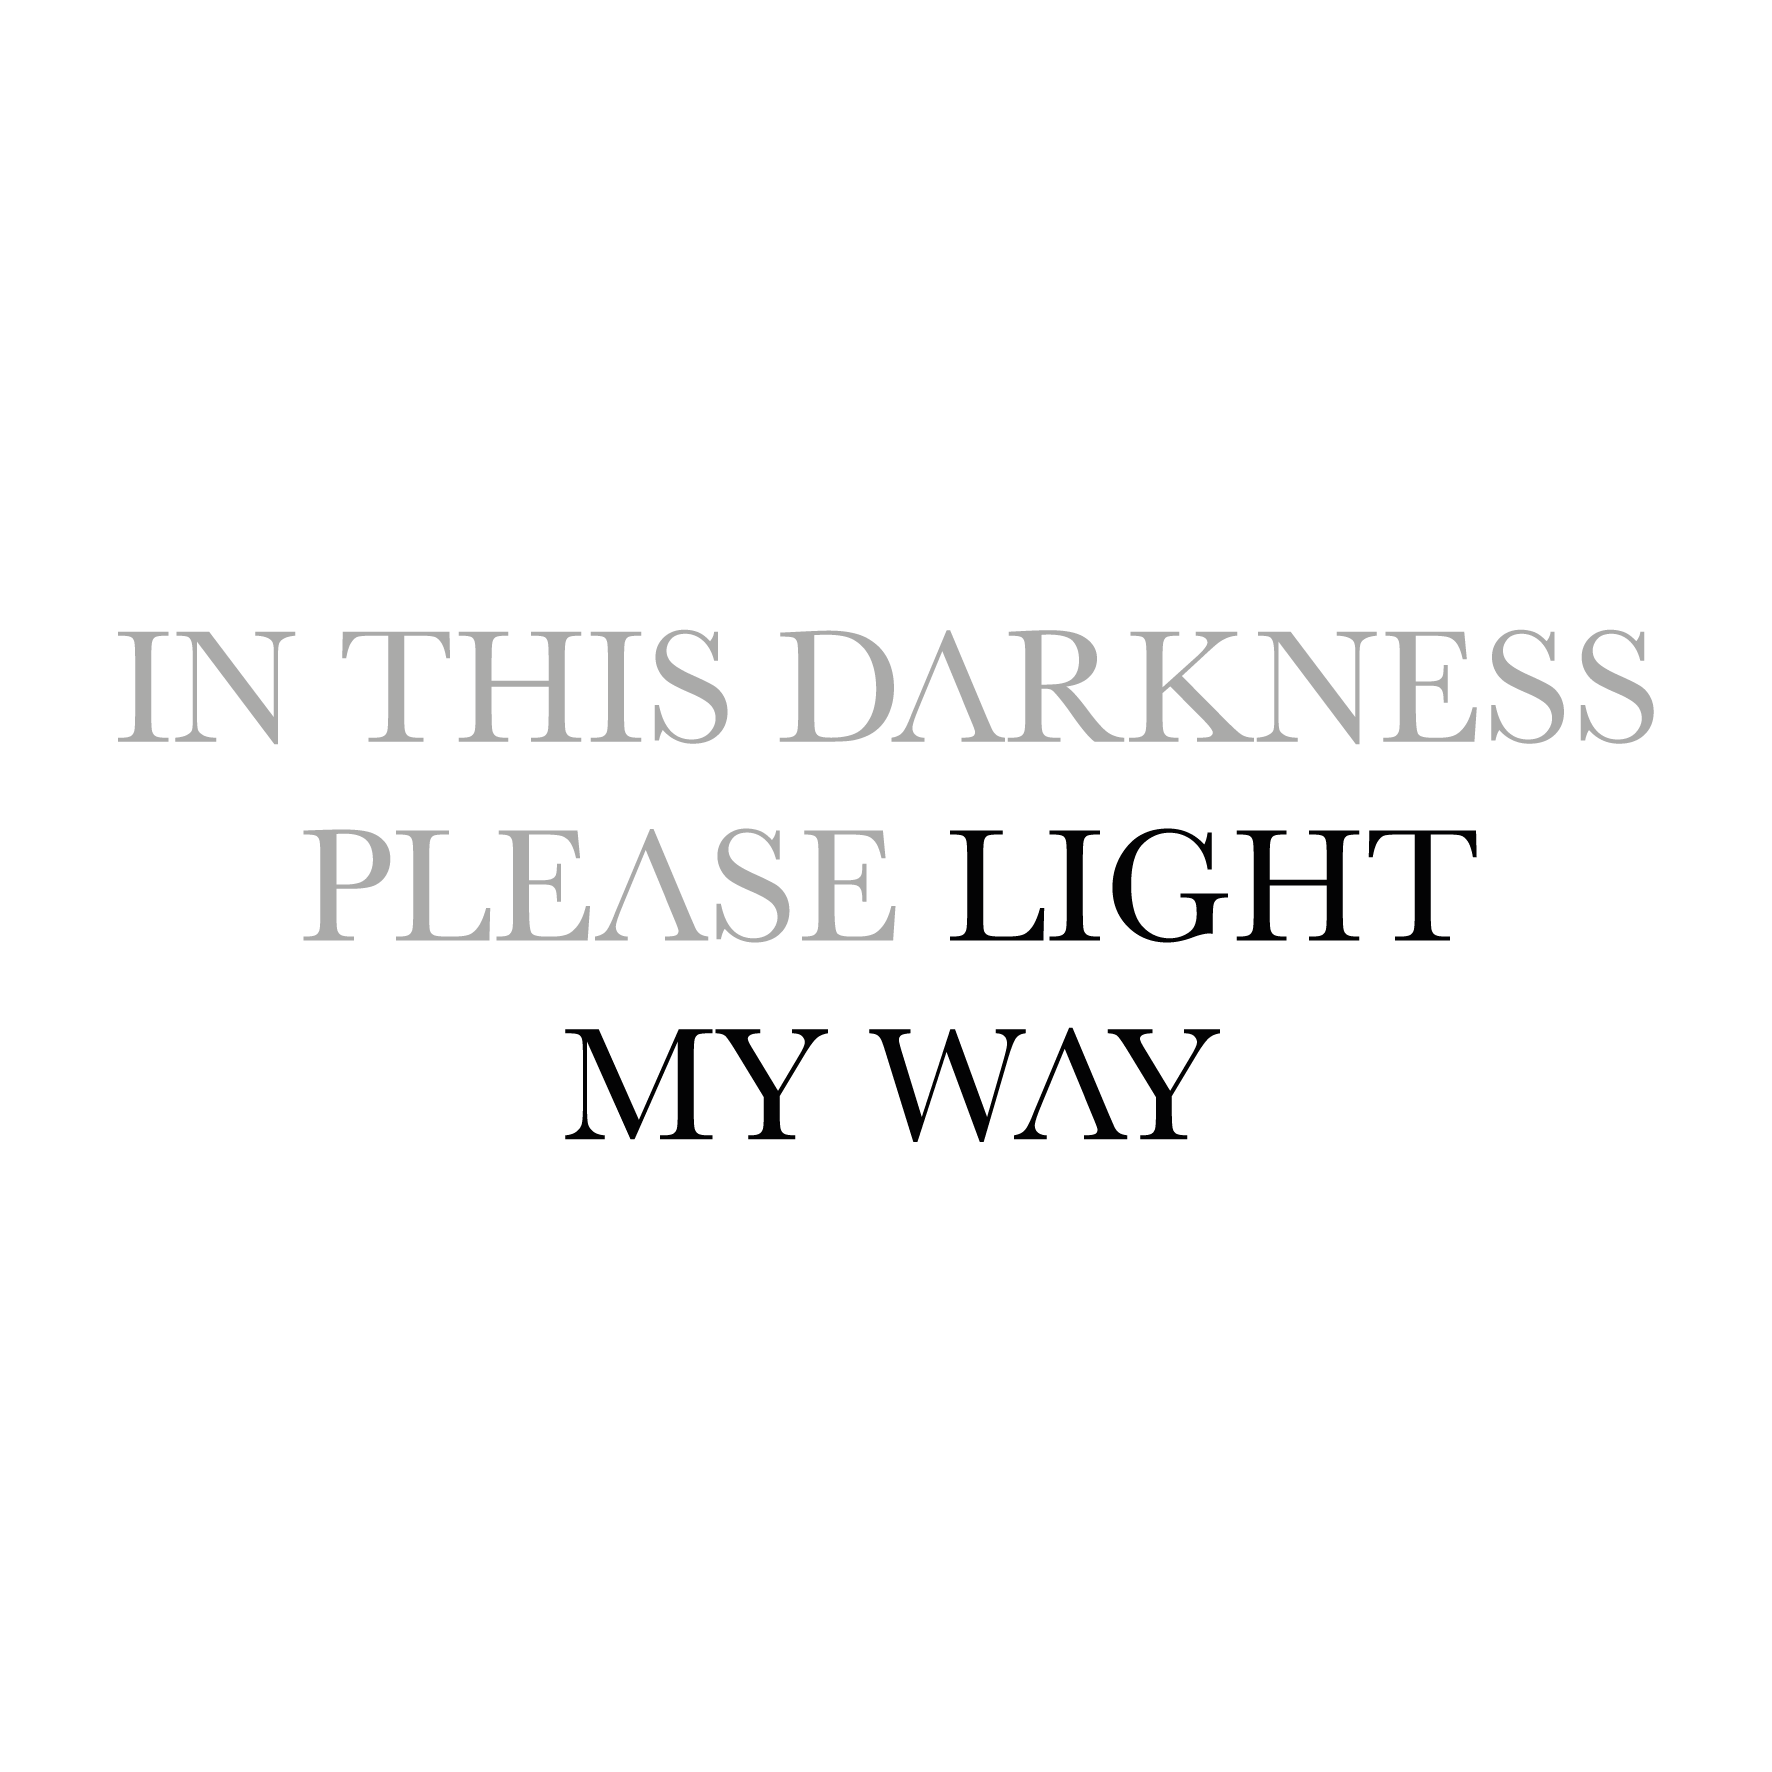 in-this-darkness-texte